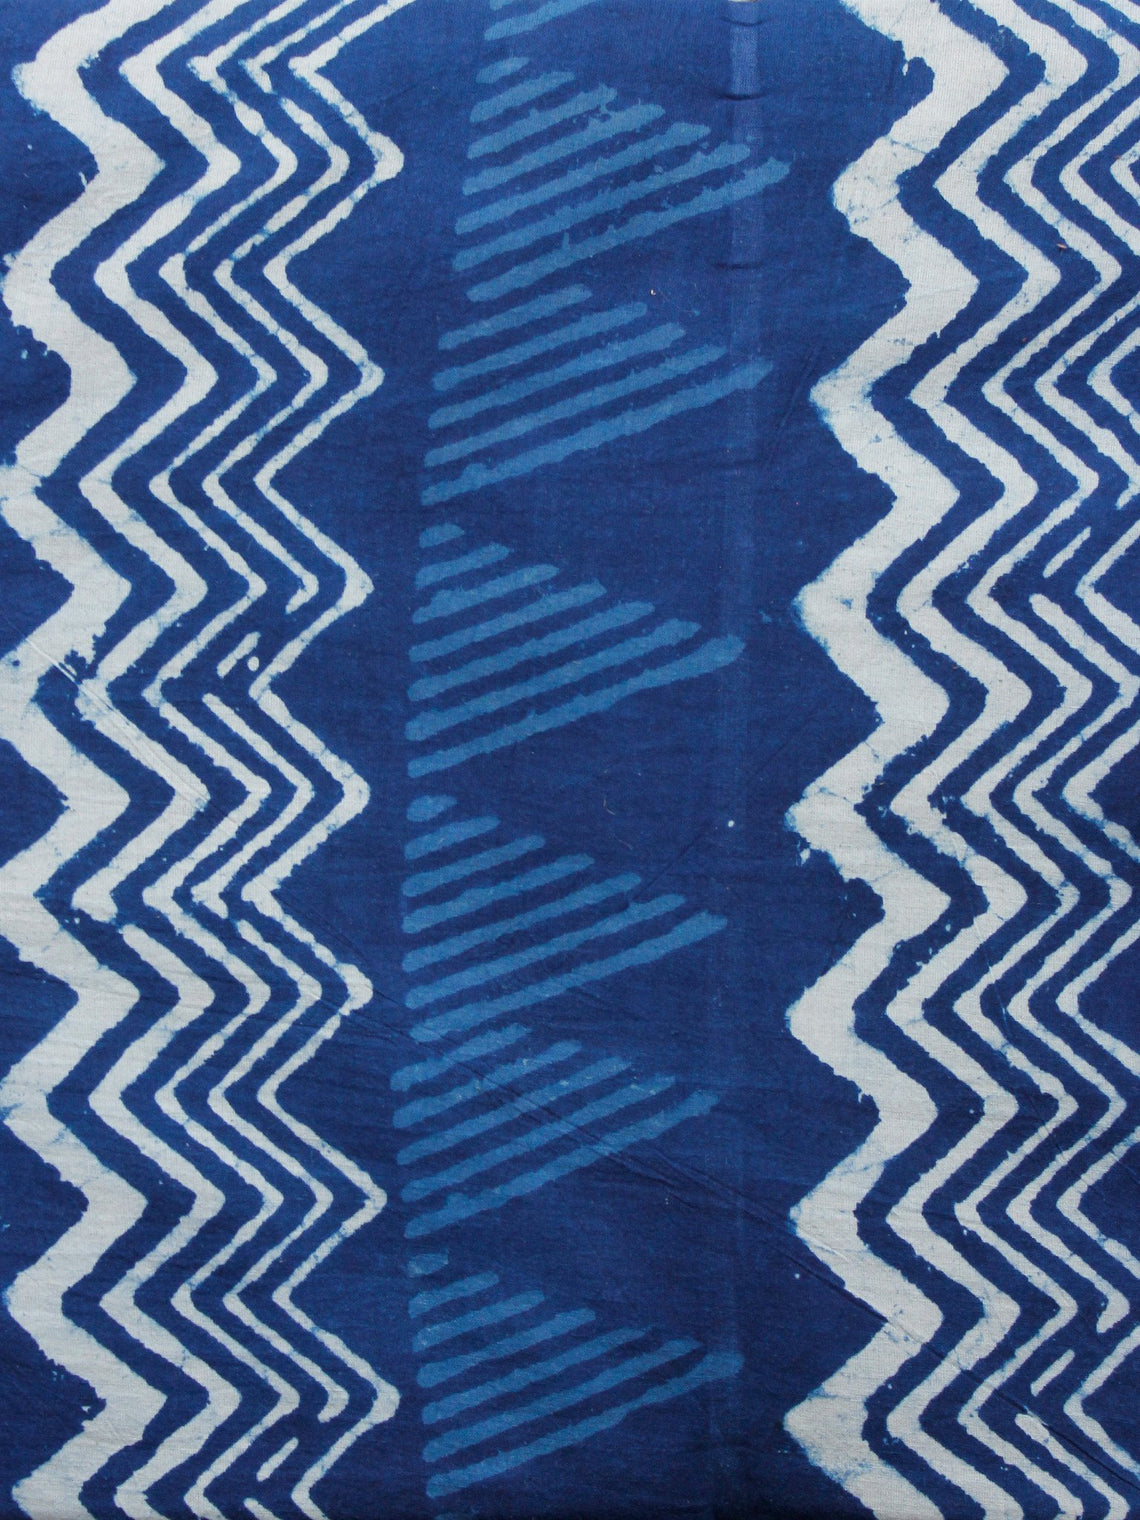 Indigo White Hand Block Printed Cotton Fabric Per Meter - F001F1557